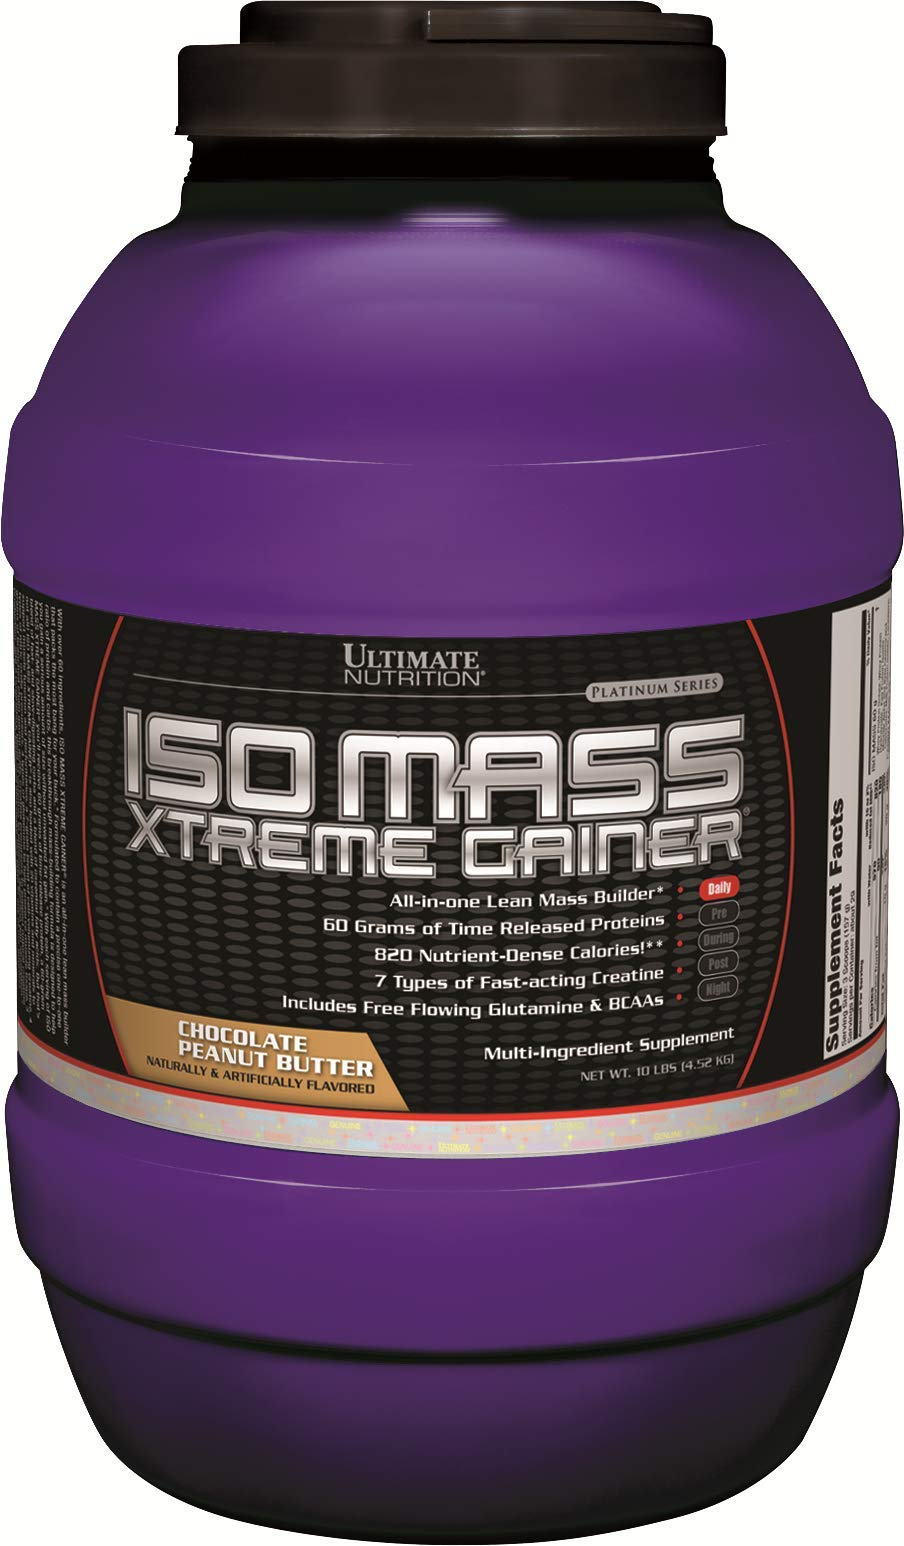 Ultimate Nutrition Iso Mass Xtreme Gainer Serious Weight and Lean Muscle Mass Protein Powder, Chocolate Peanut Butter, 30 Servings